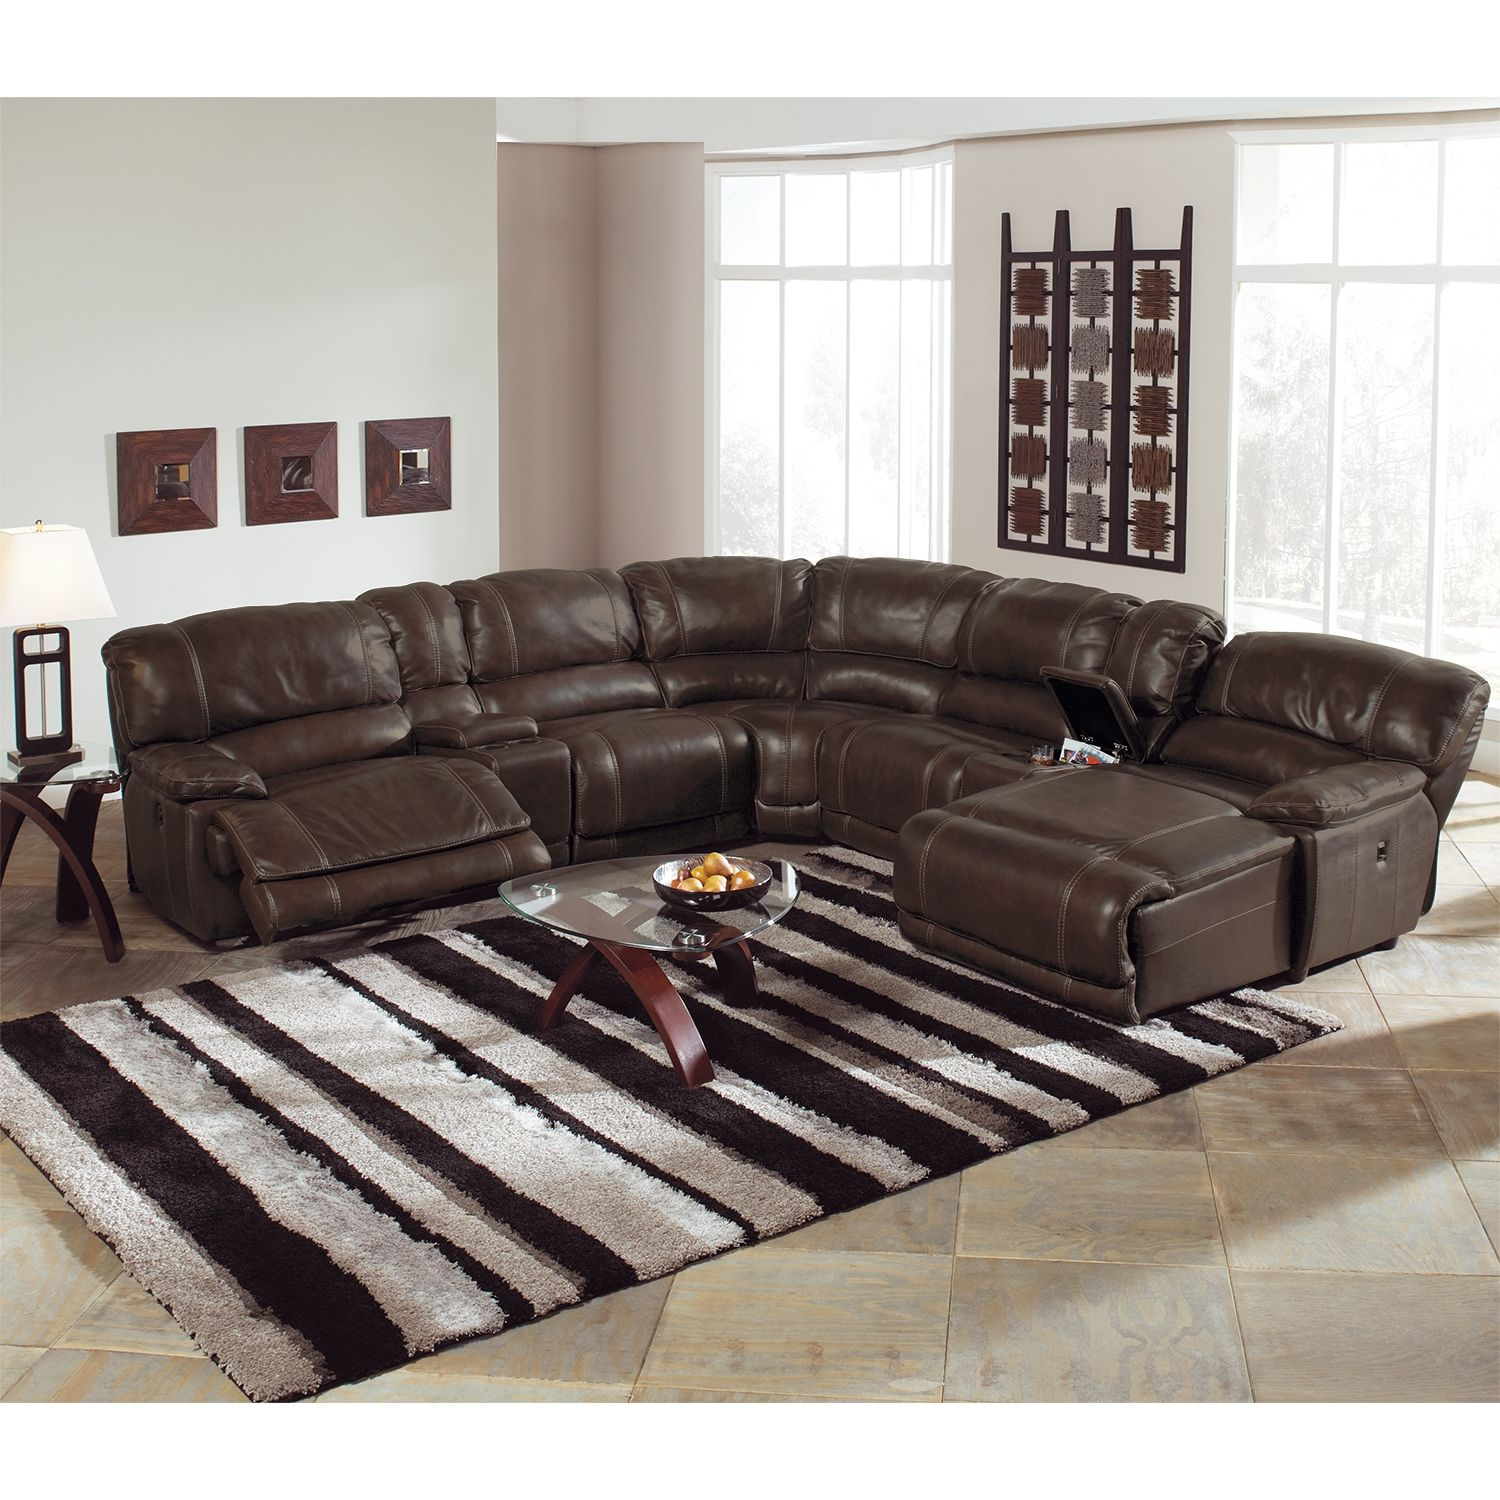 Living Room Furniture - Nikki 6-Piece Power Reclining Sectional with 3 Reclinersu2026 | Mad for Motion u0026 Leather | Pinterest | Reclining sectional Recliner and ... : leather sectional power recliner - Sectionals, Sofas & Couches